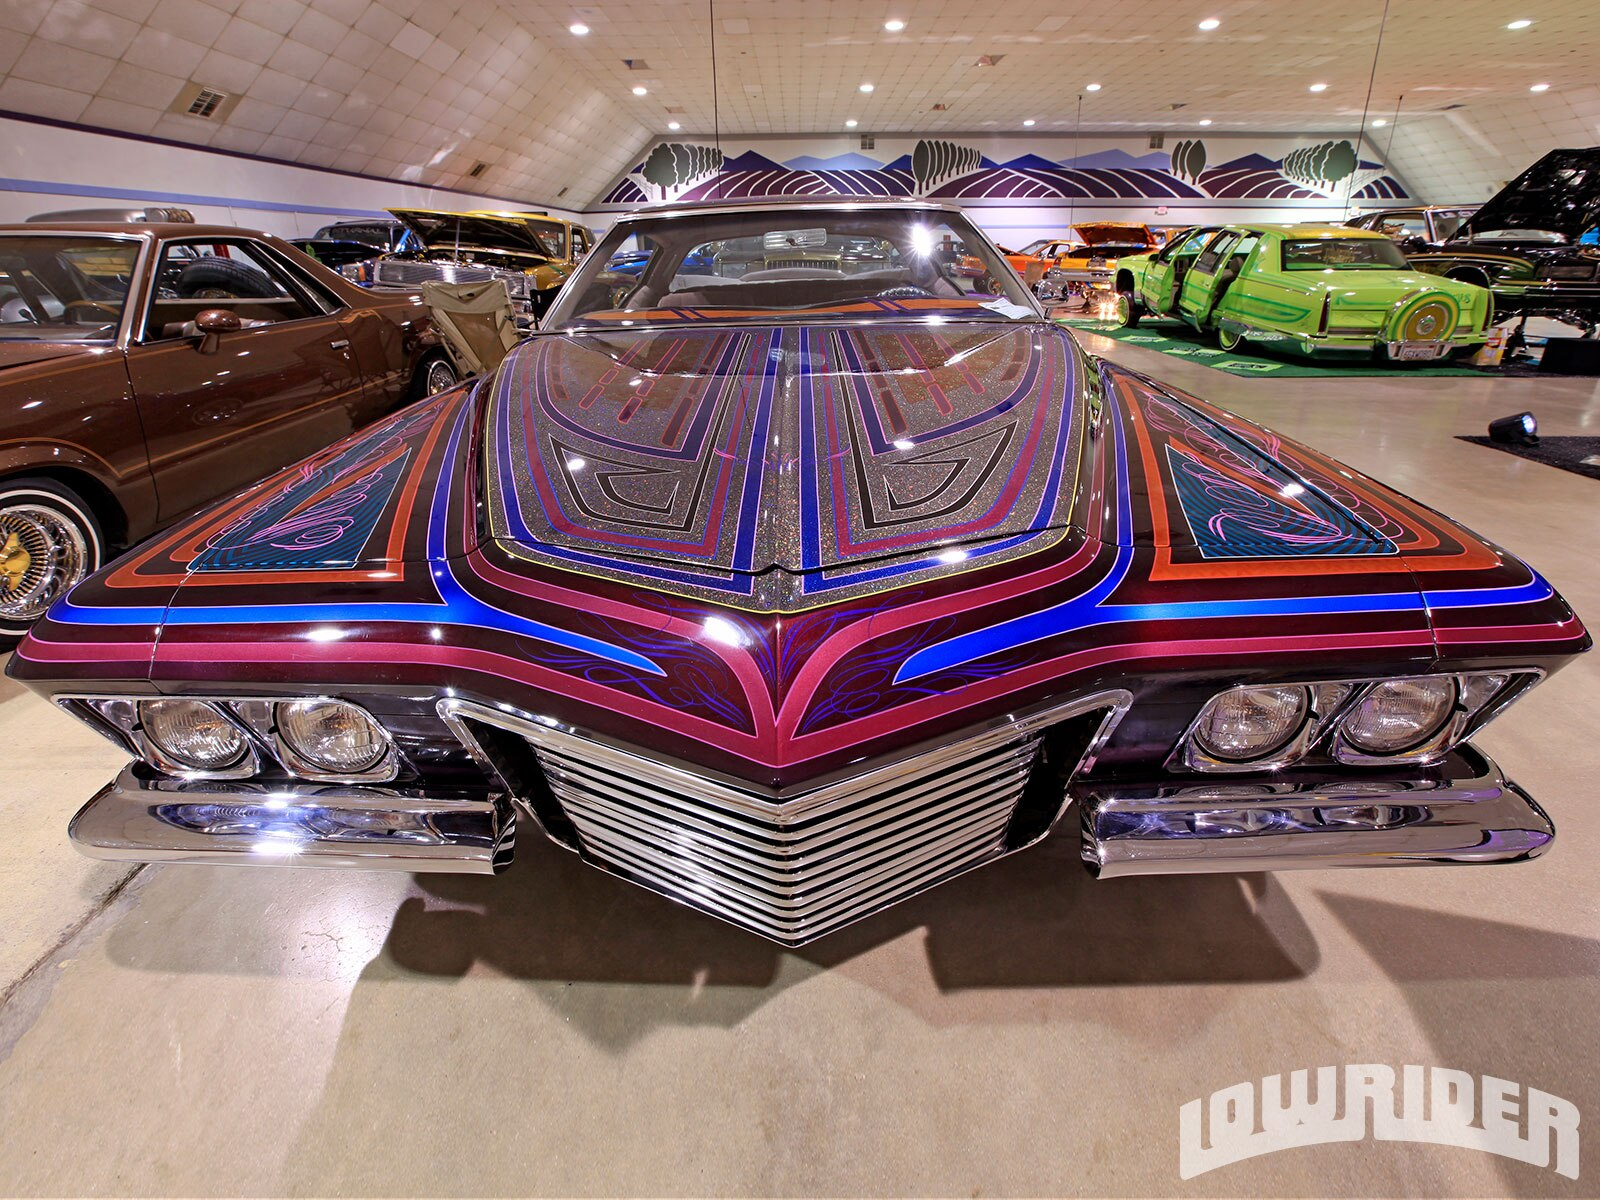 carnales-unidos-super-benefit-car-show-lowrider-front-view2